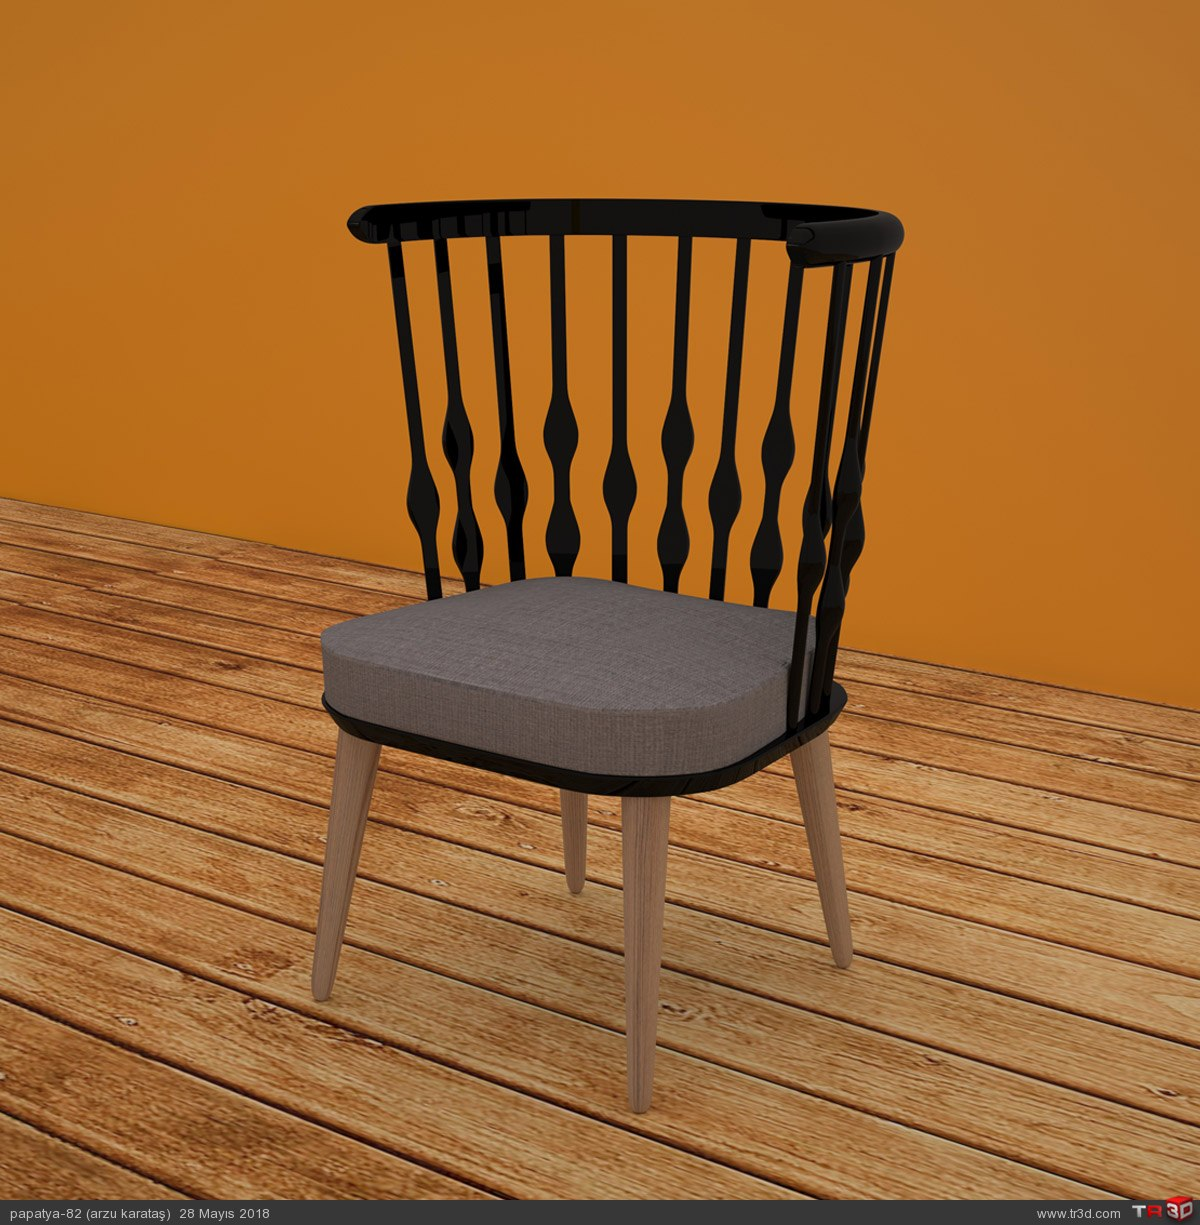 design by patricia urquiola nub chair 1